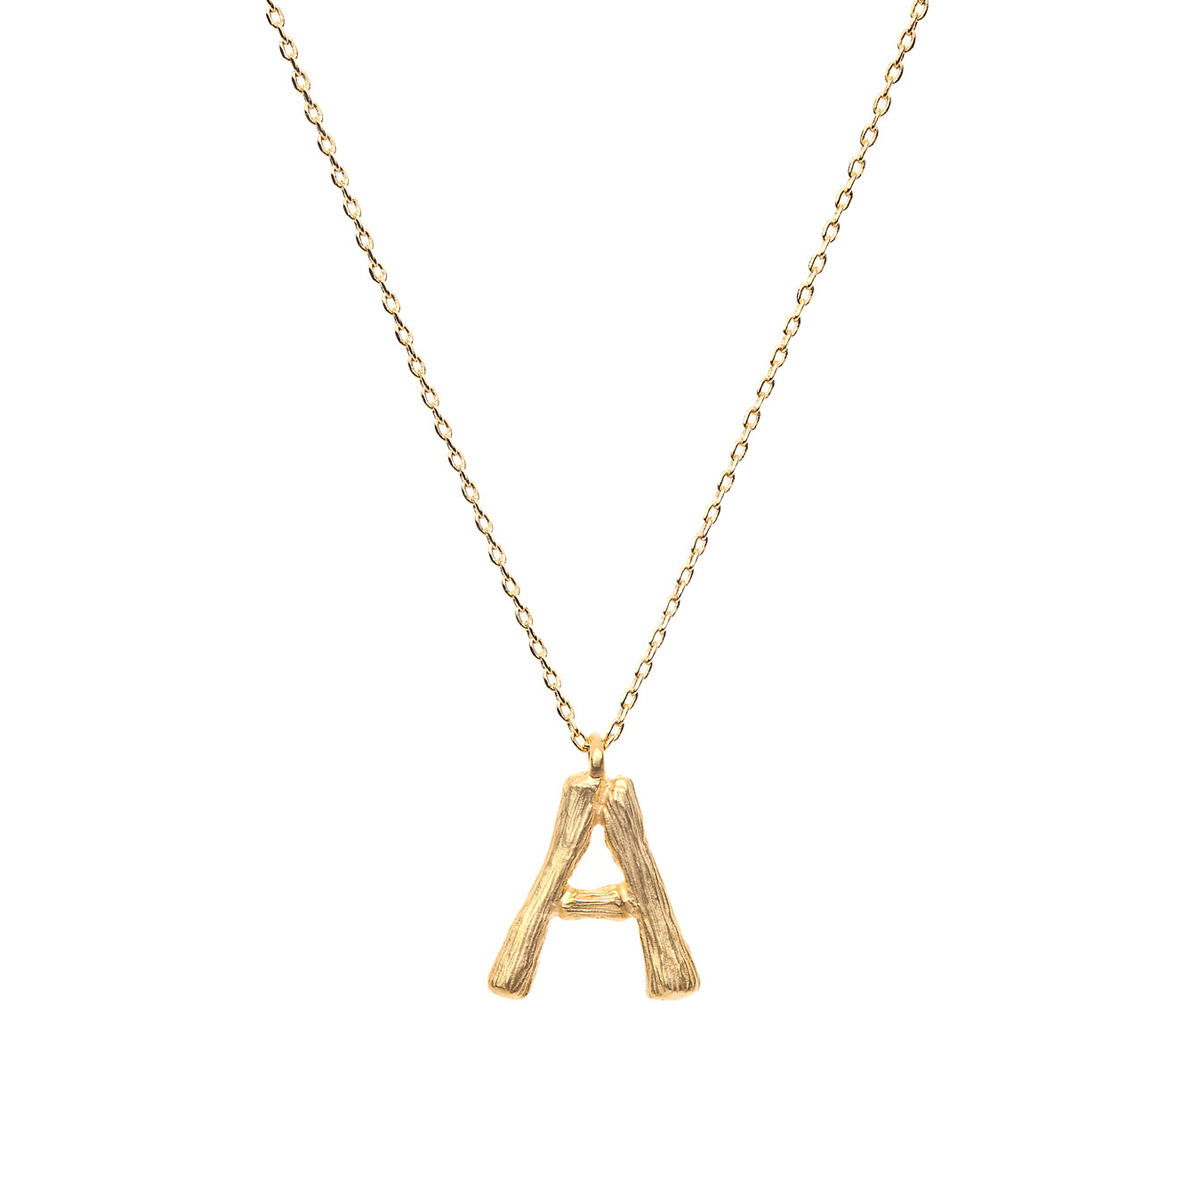 Amber Sceats Gold Letter Necklace